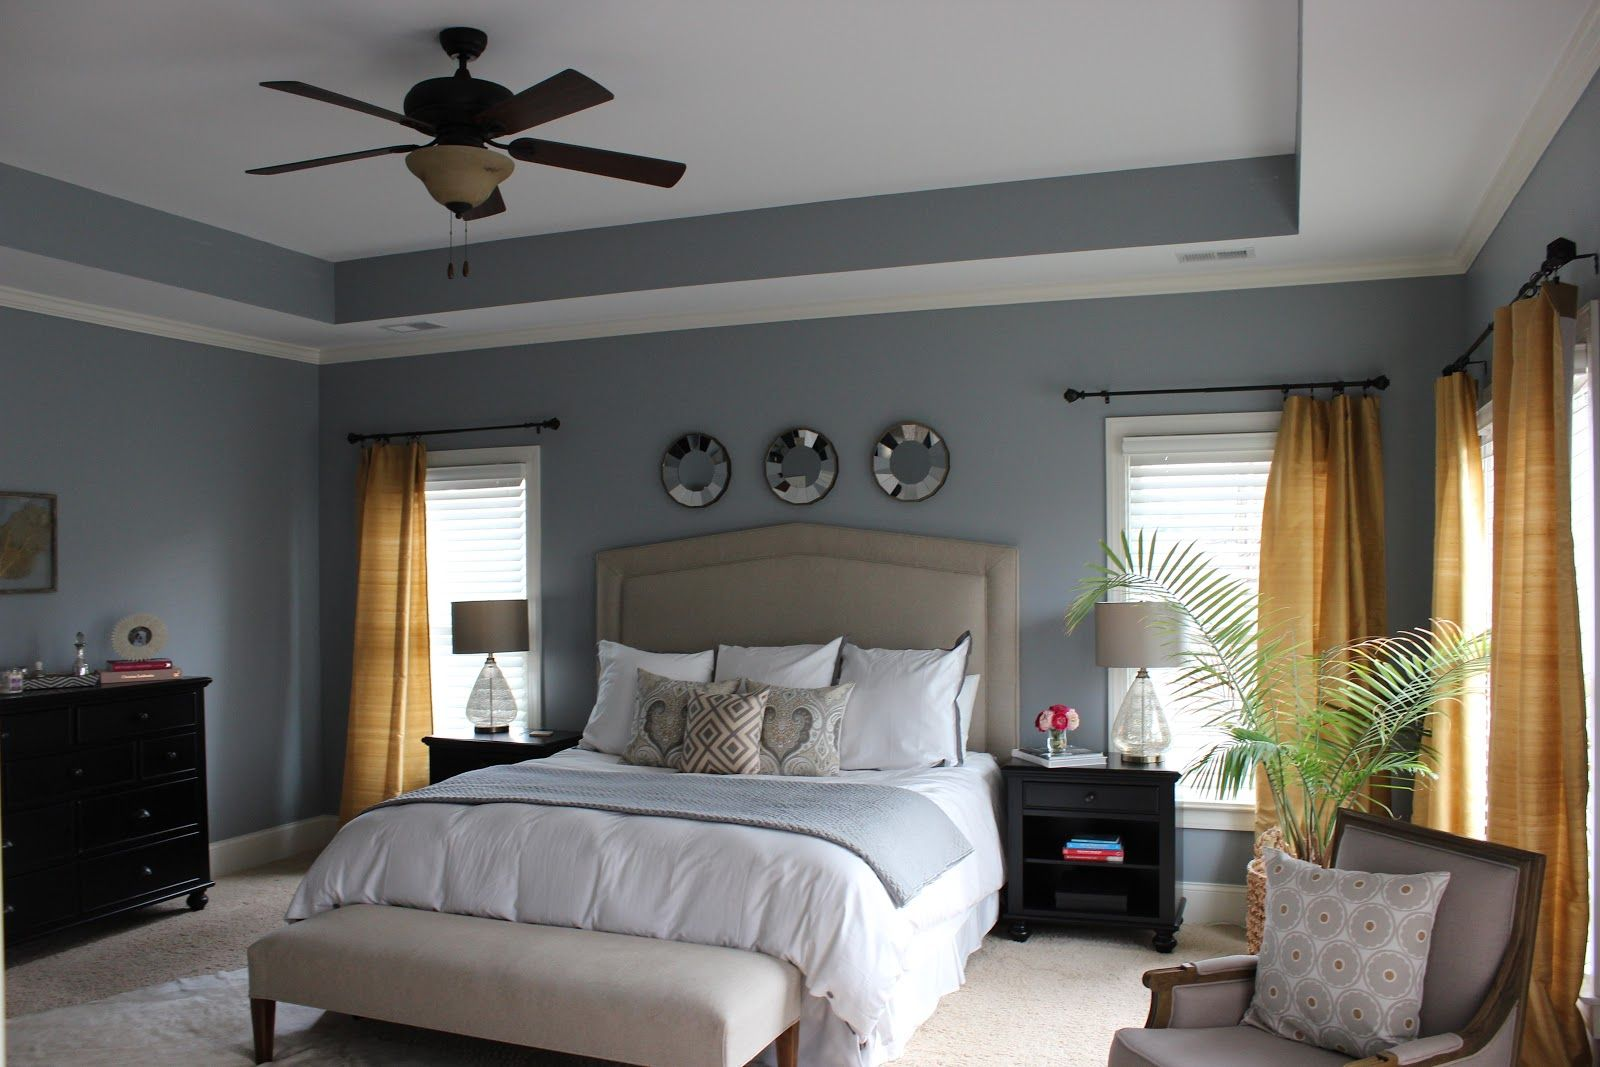 Benjamin moore gull wing grey walls great master bedroom for Grey wall bedroom ideas